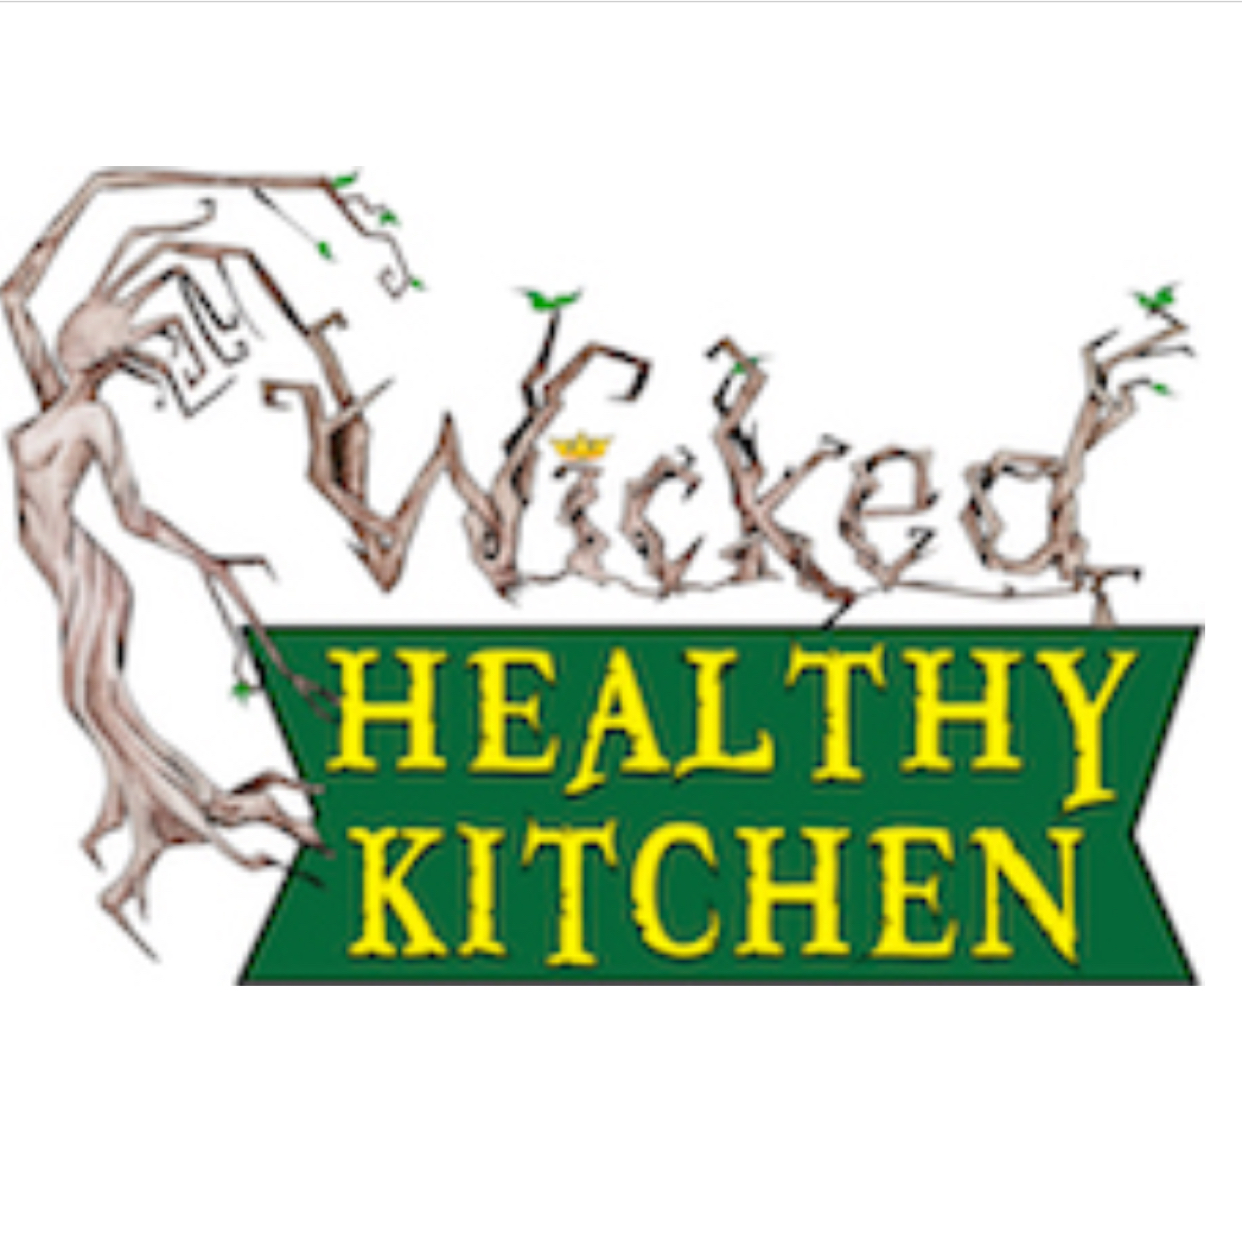 Wicked Healthy Kitchen